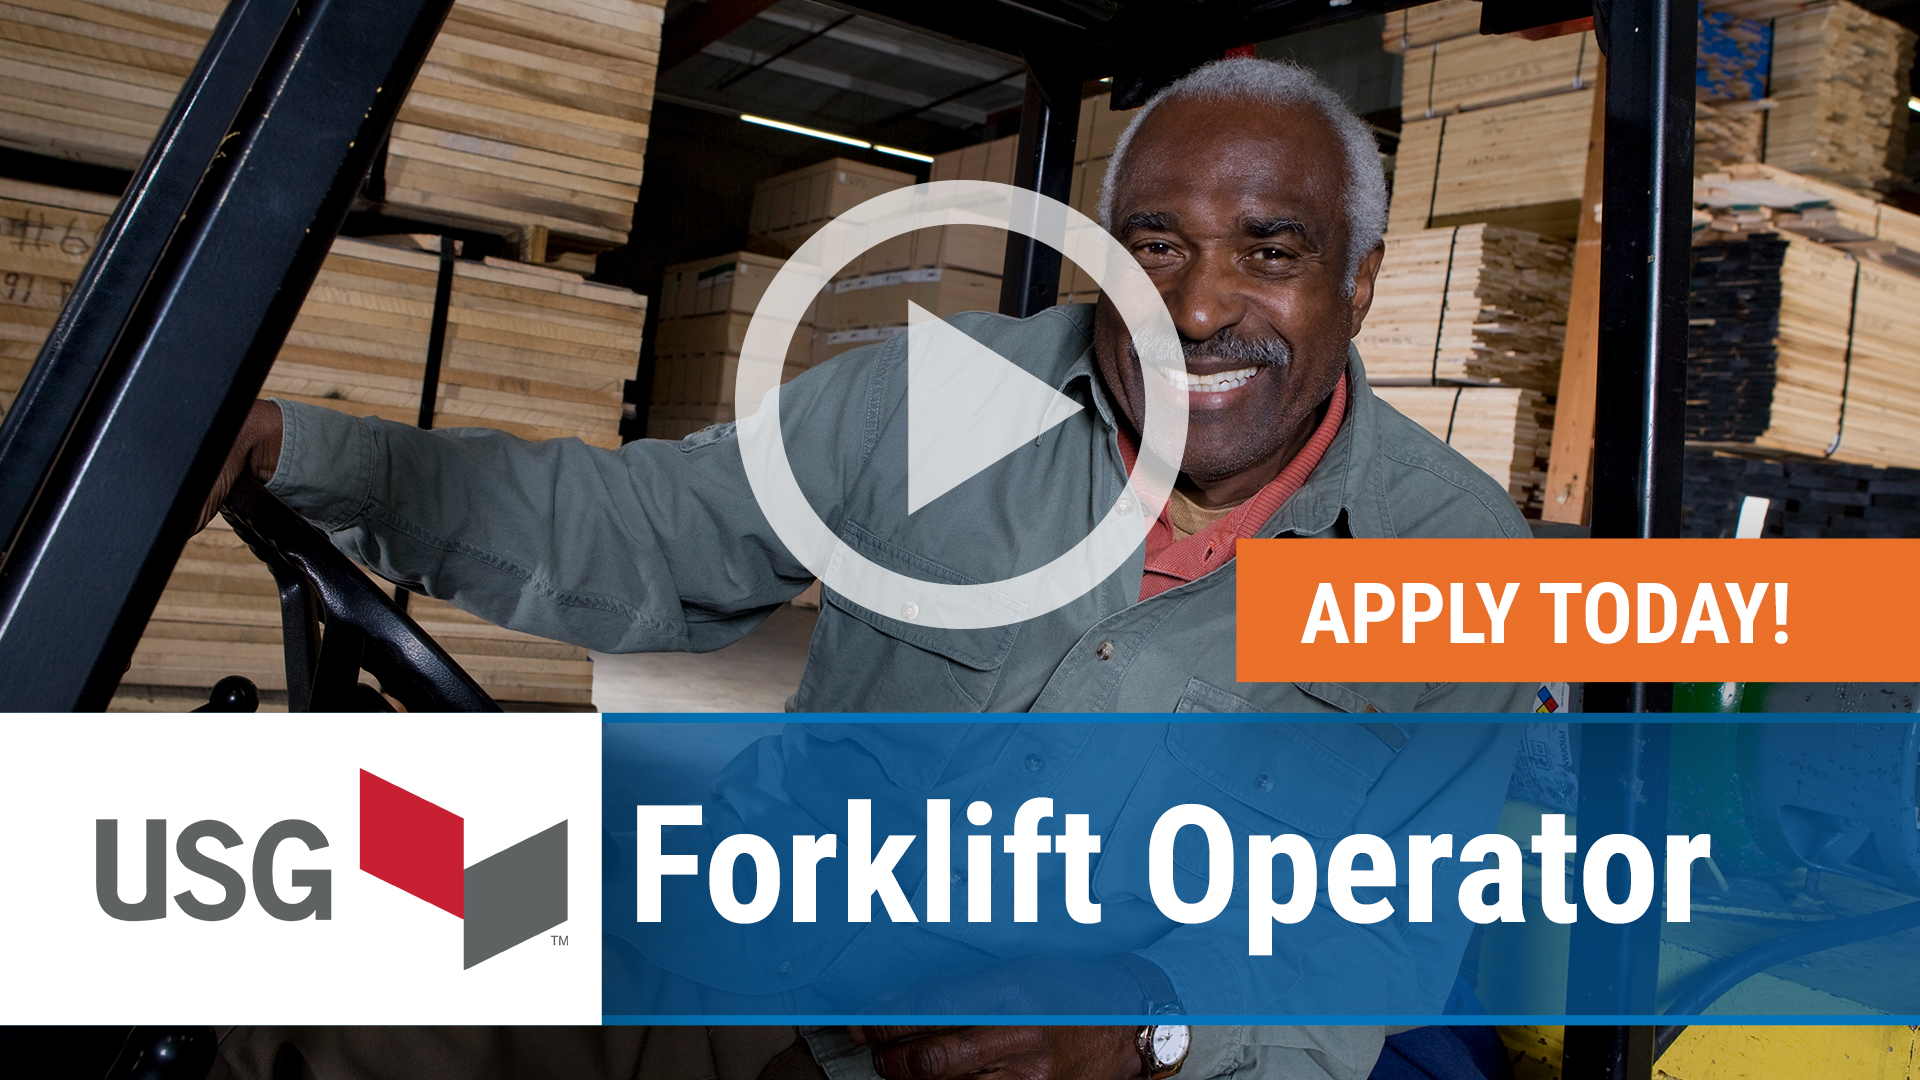 Watch our careers video for available job opening Forklift Operator in Bridgeport